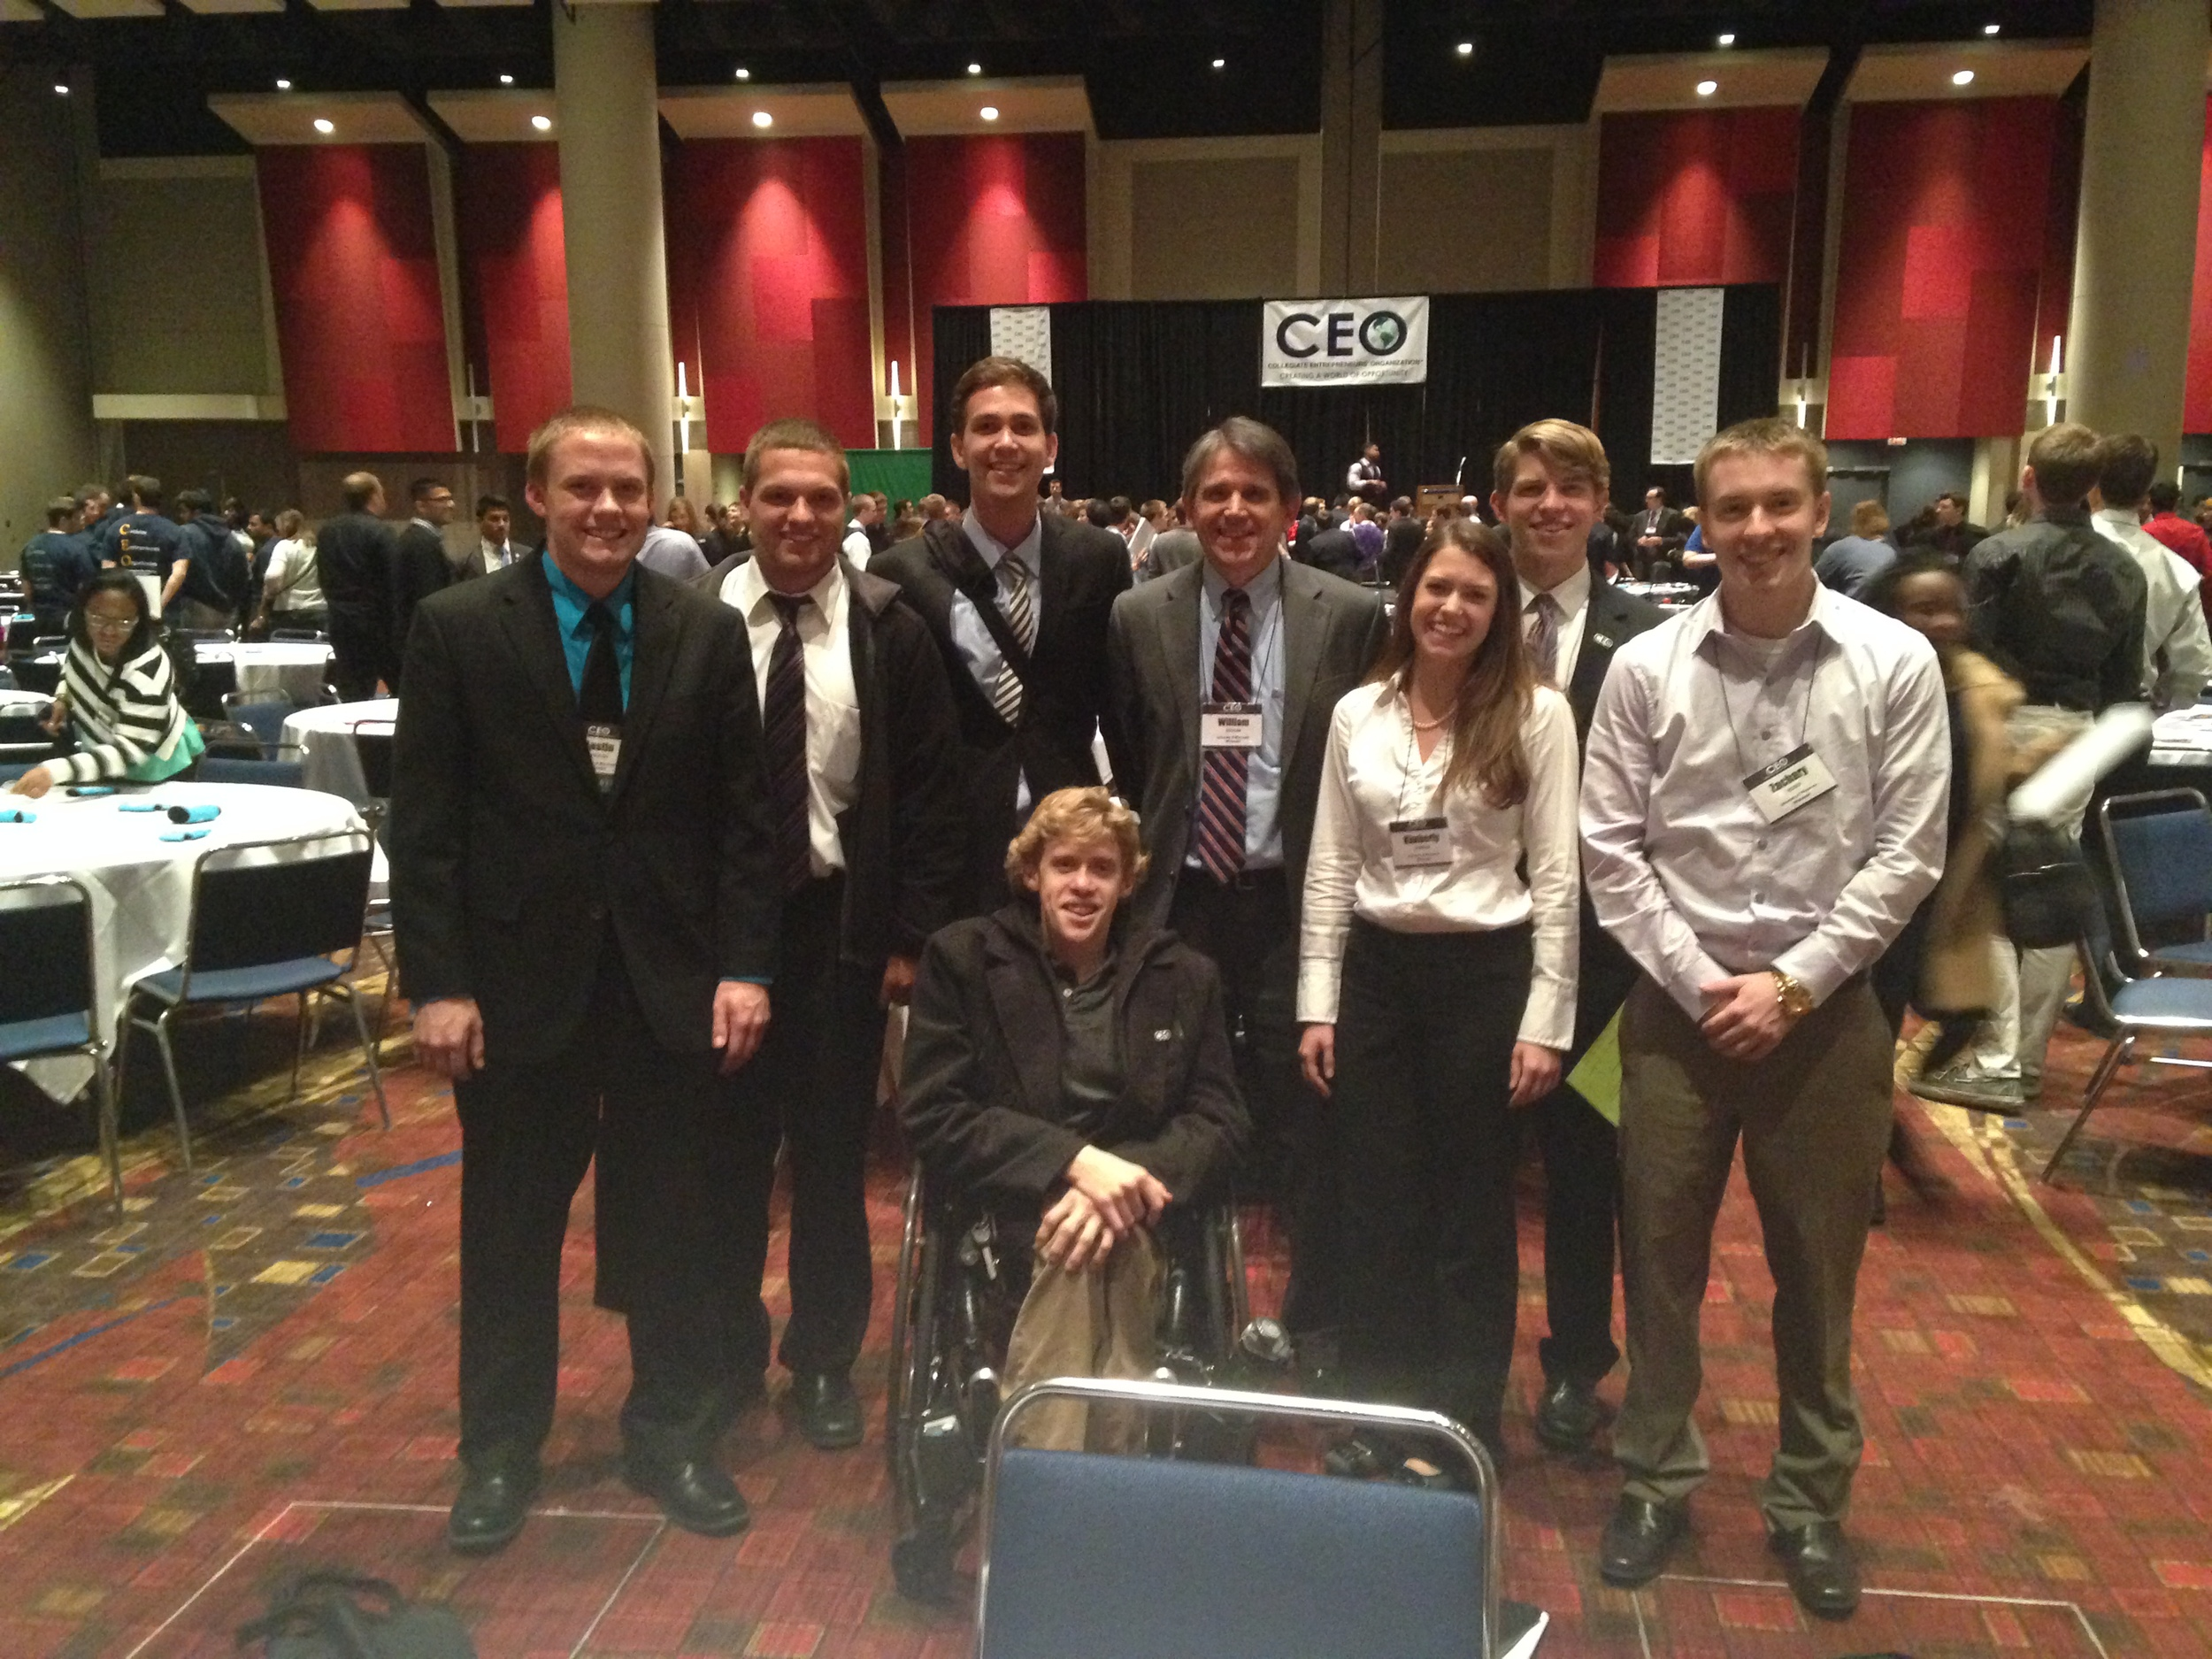 The University of Wisconsin - Whitewater CEO Chapter at the 2013 CEO National Conference.